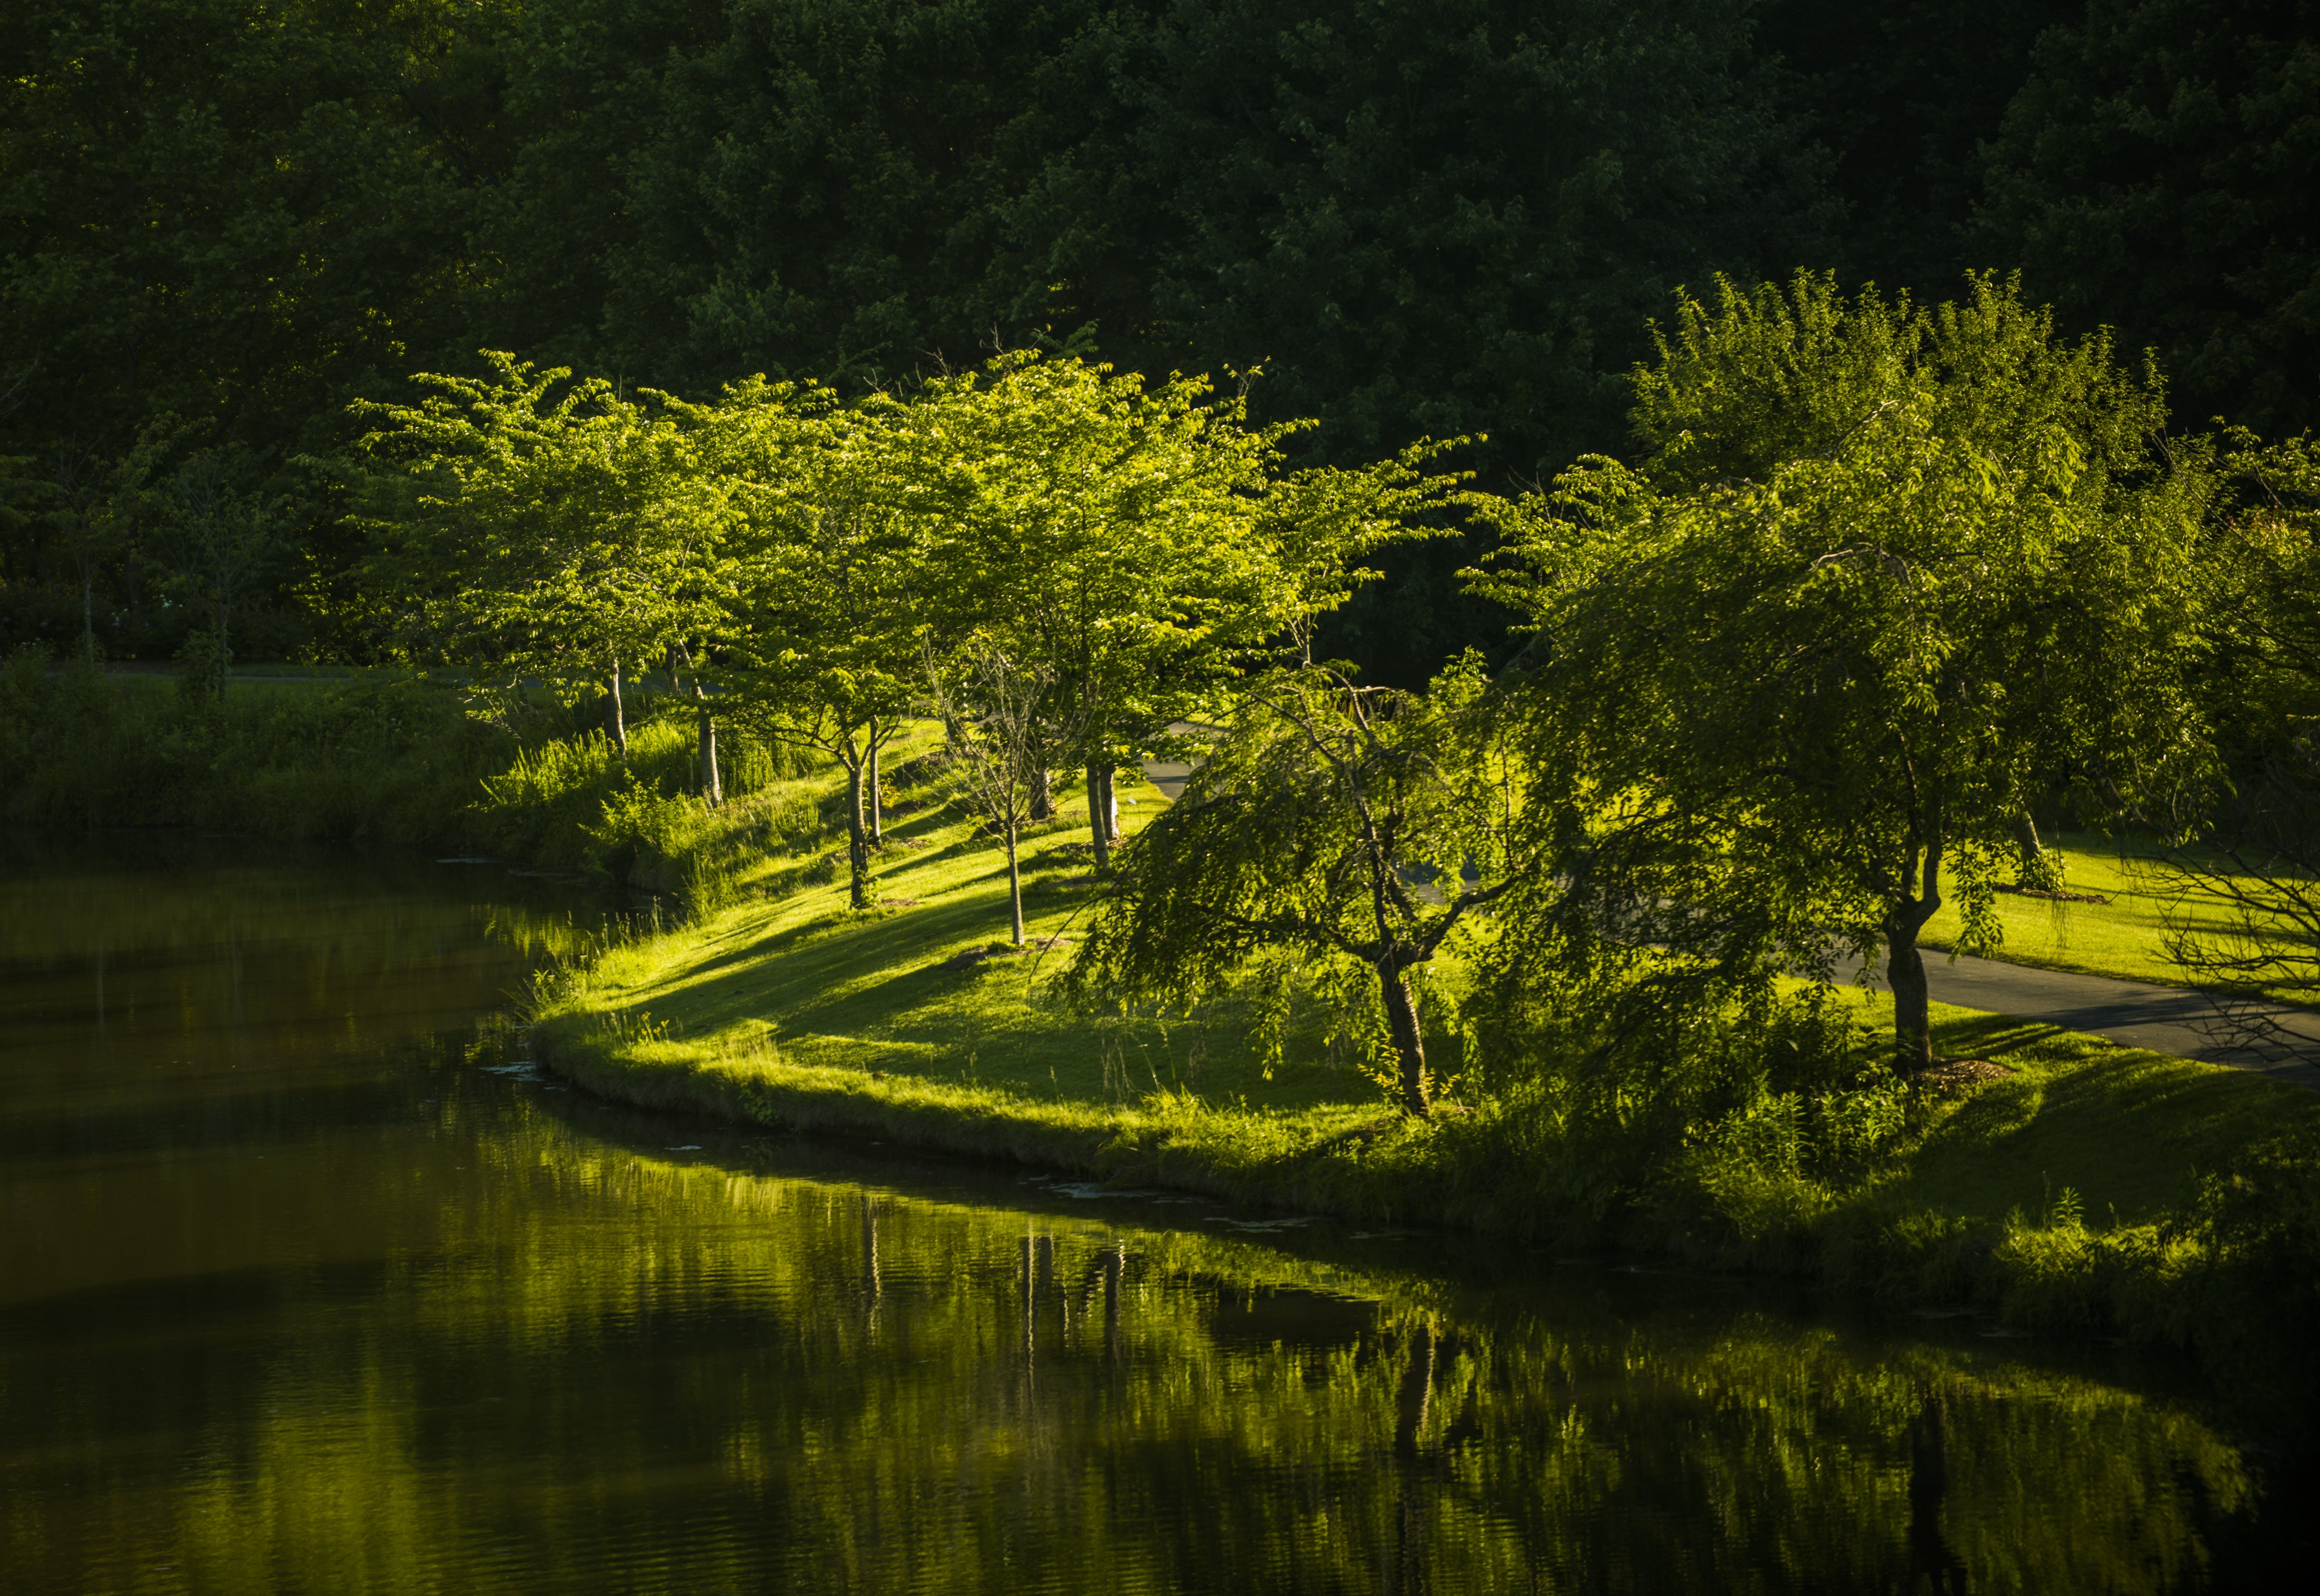 Water Reflecting Green Leafed Treees